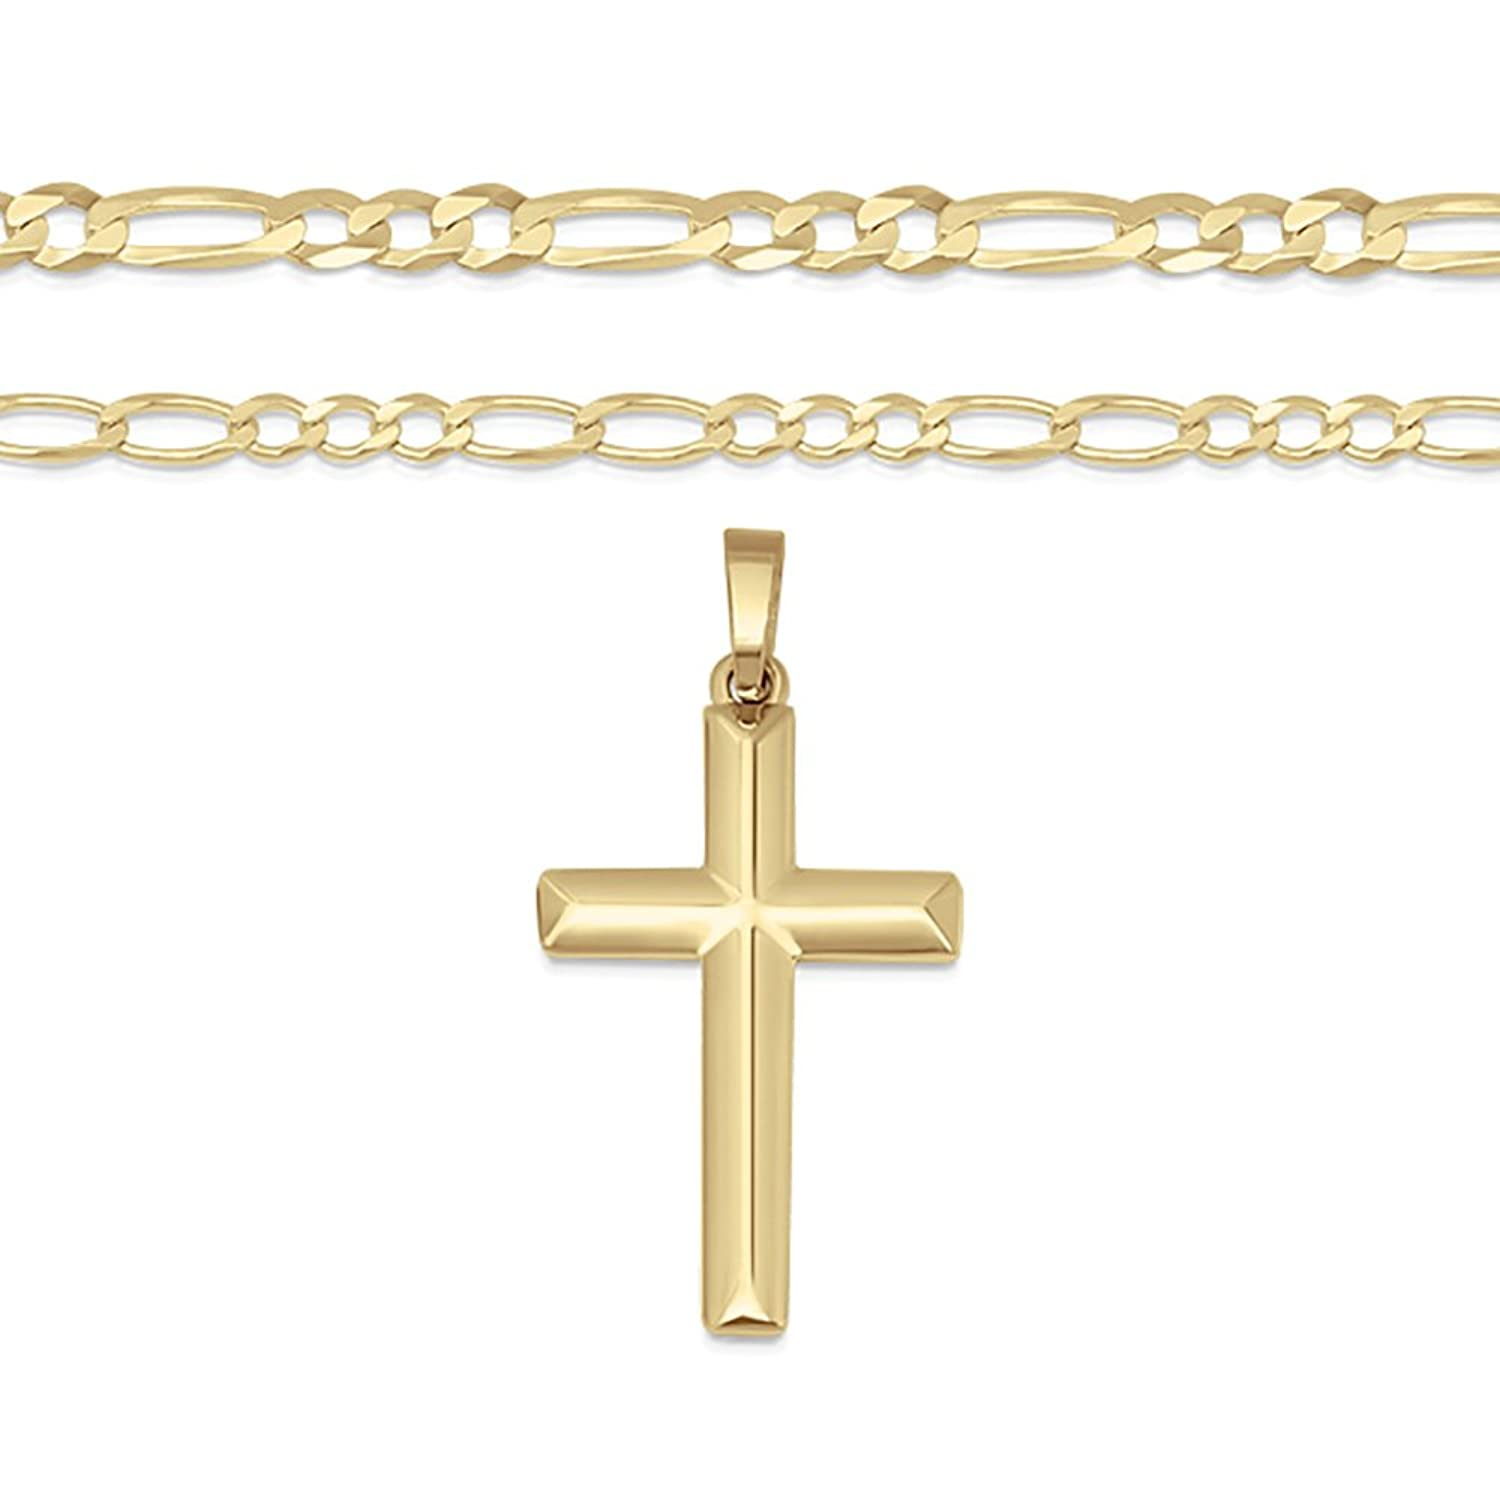 f0b3553cb995d6 XP Jewelry 14K Gold Plated Sterling Silver Cross Pendant Italian Made  Figaro Chain Necklace - Choice